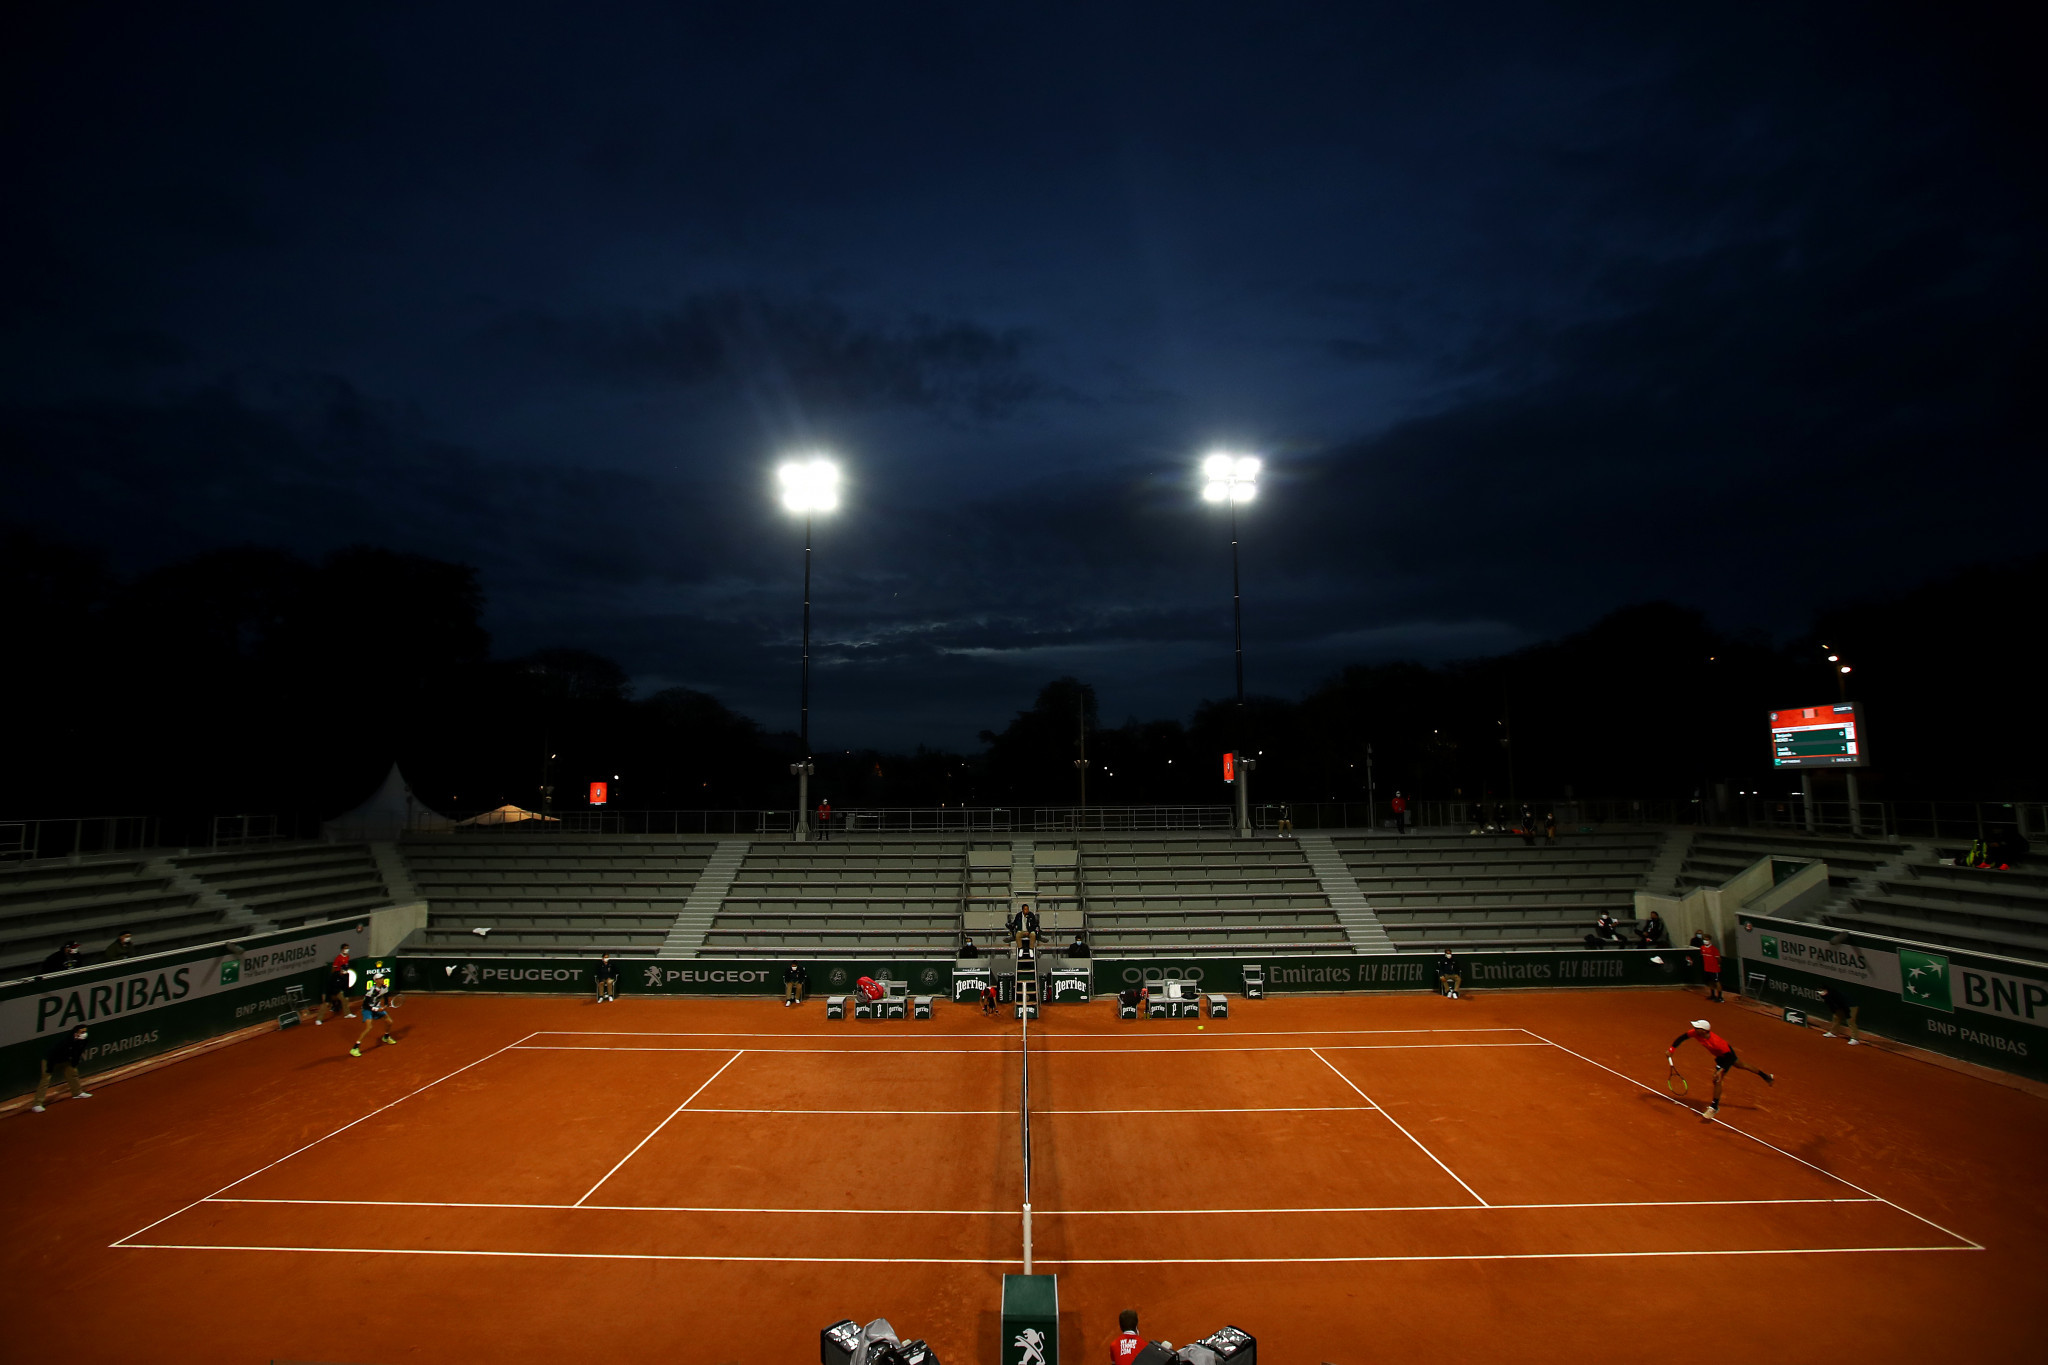 The addition of floodlights to the Roland Garros complex has enabled action to continue on all courts after dark ©Getty Images